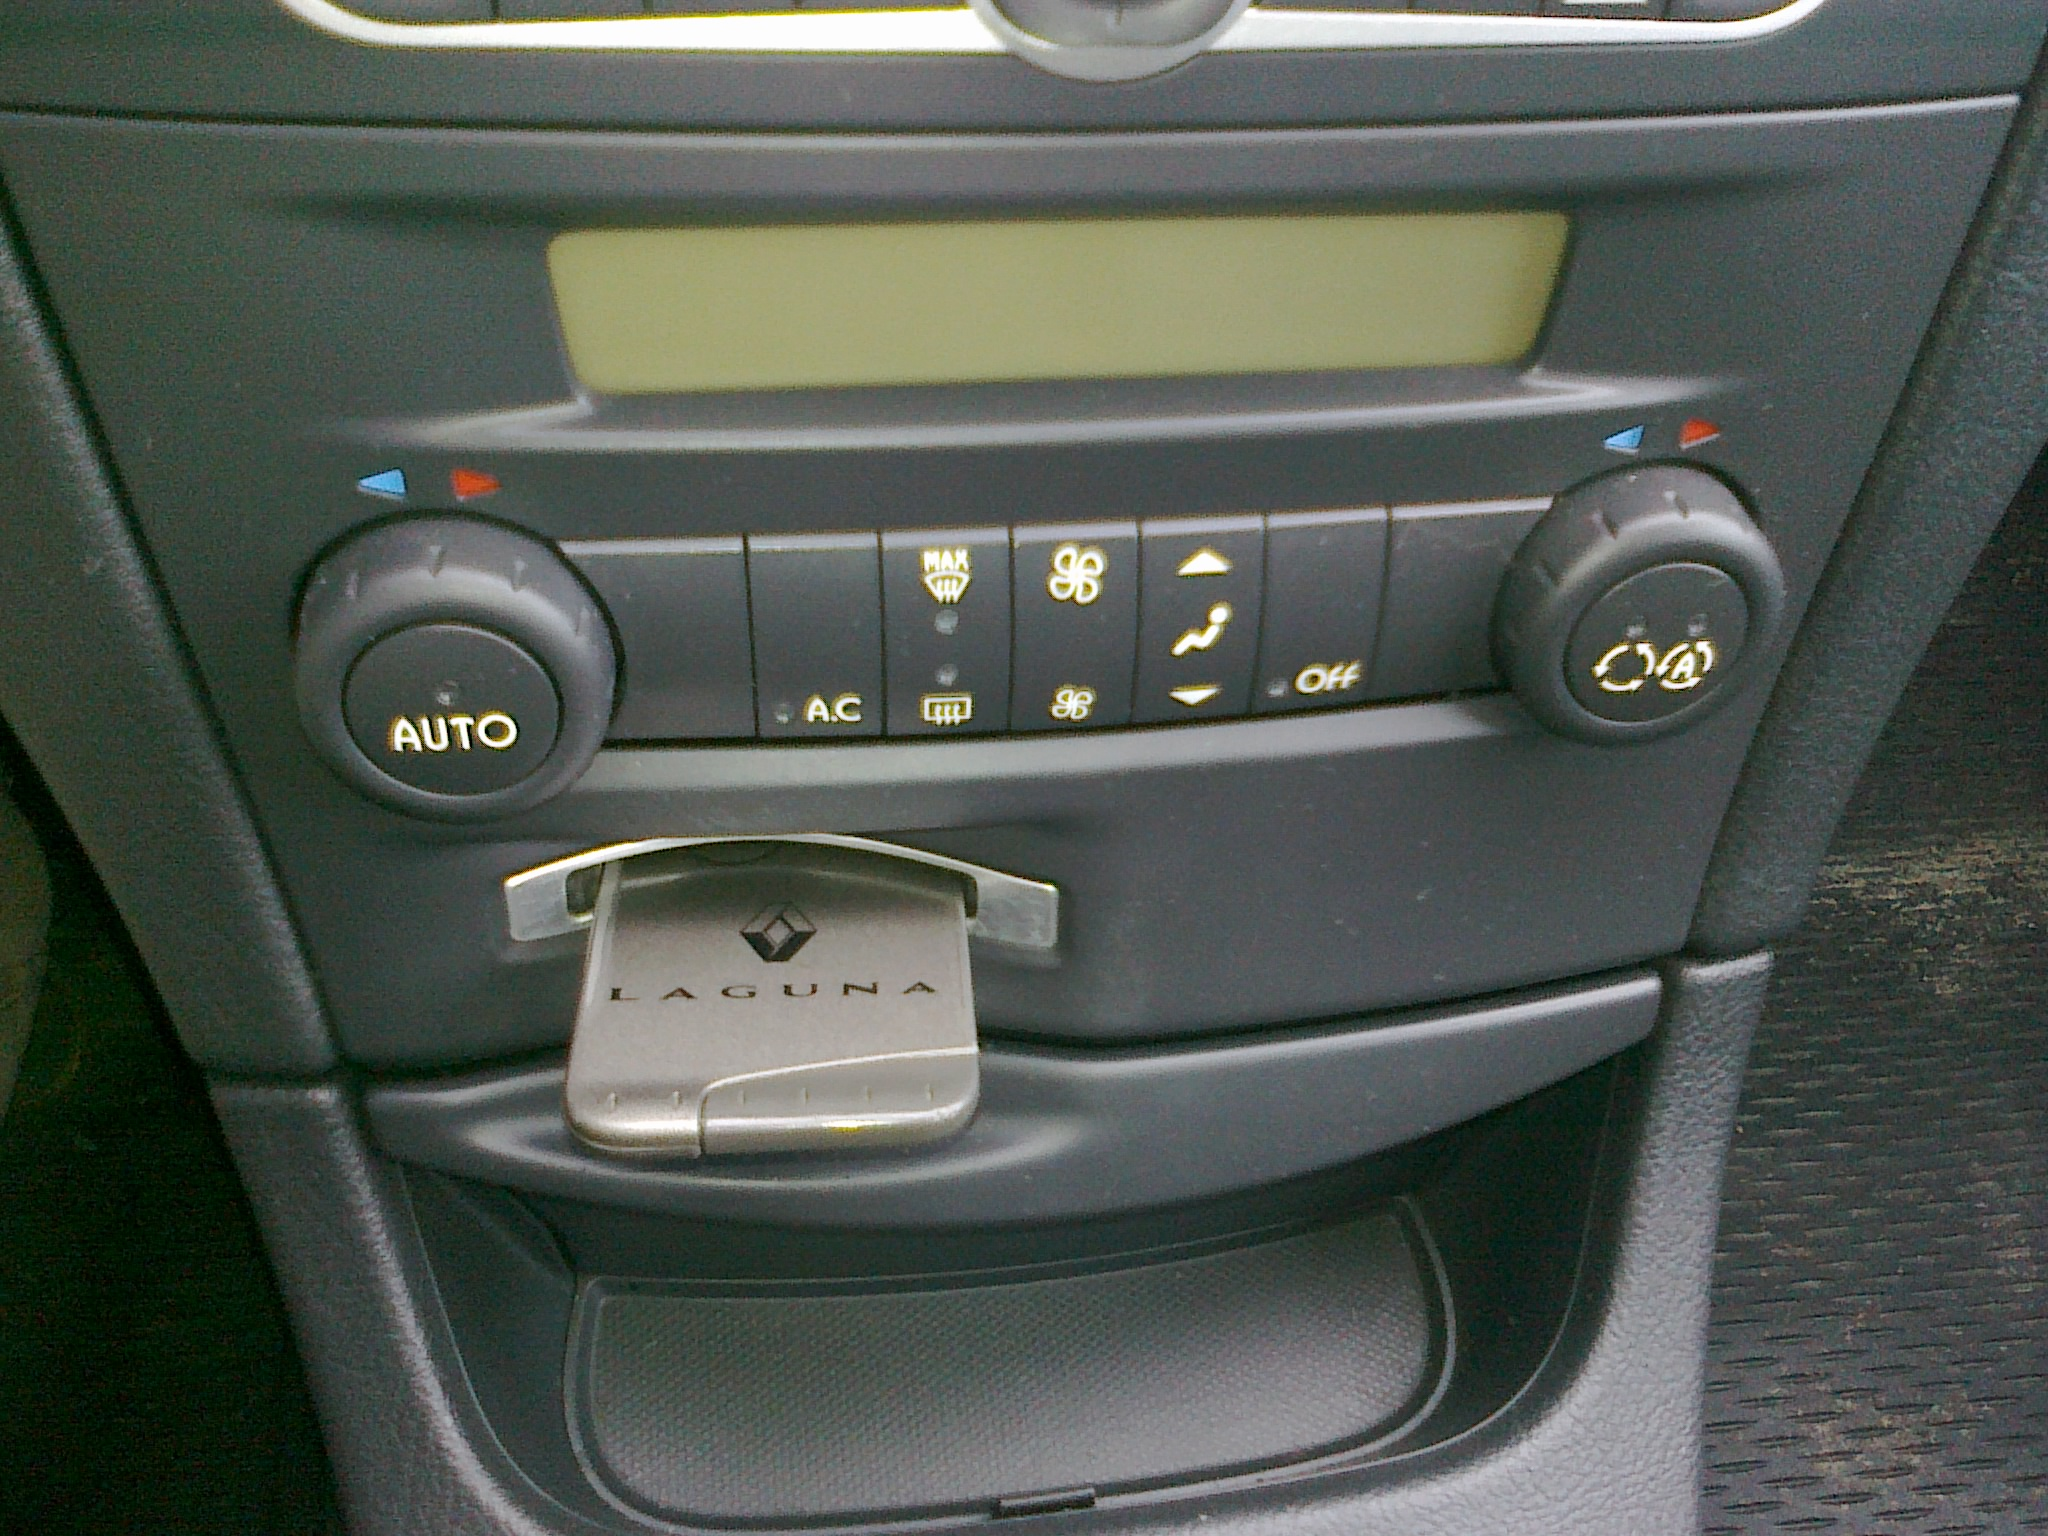 Renault Laguna 2 Heater Fan Not Workingfixed Archive Scenic Water In Fuse Box Forums Independent Forum